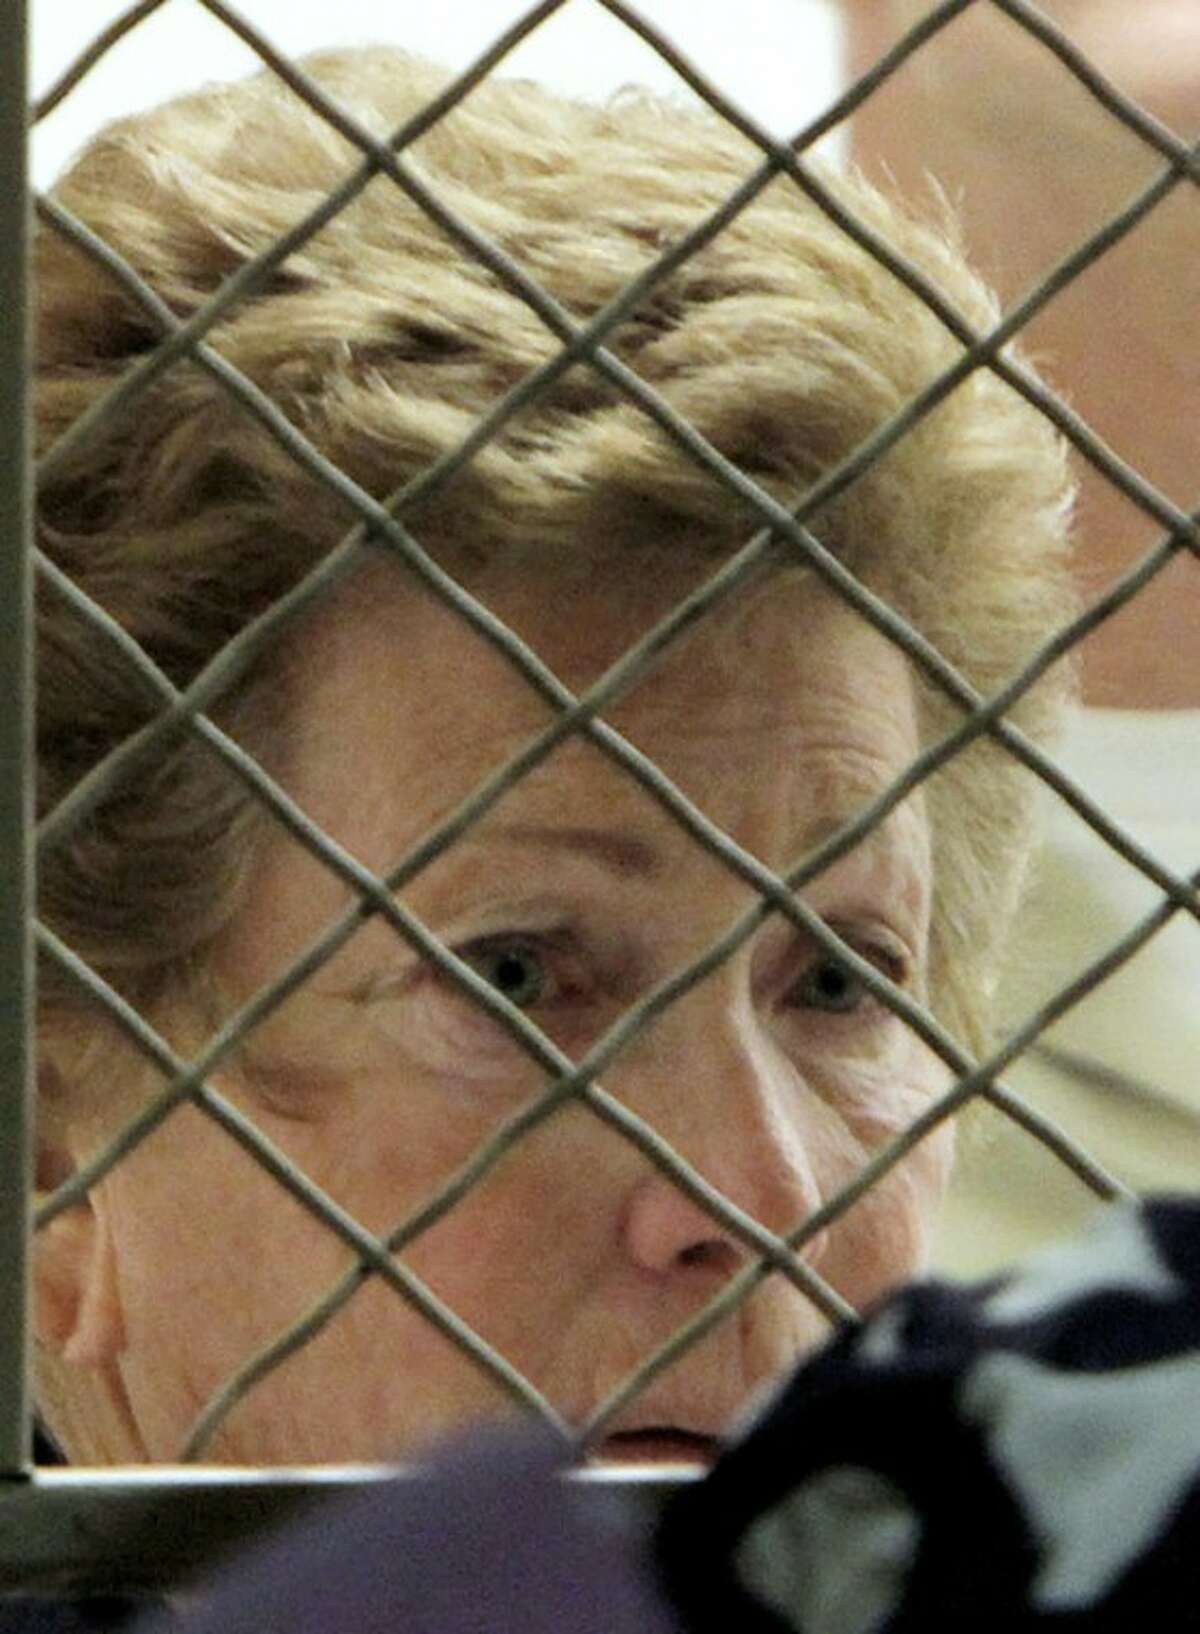 Lois Goodman looks towards her attorney, Allison Triessl as her arraignment on murder charges is postponed Friday Aug. 24, 2012, in Los Angeles. Goodman, professional tennis referee, has been accused of murdering her 80-year-old husband. (AP Photo/Nick Ut)